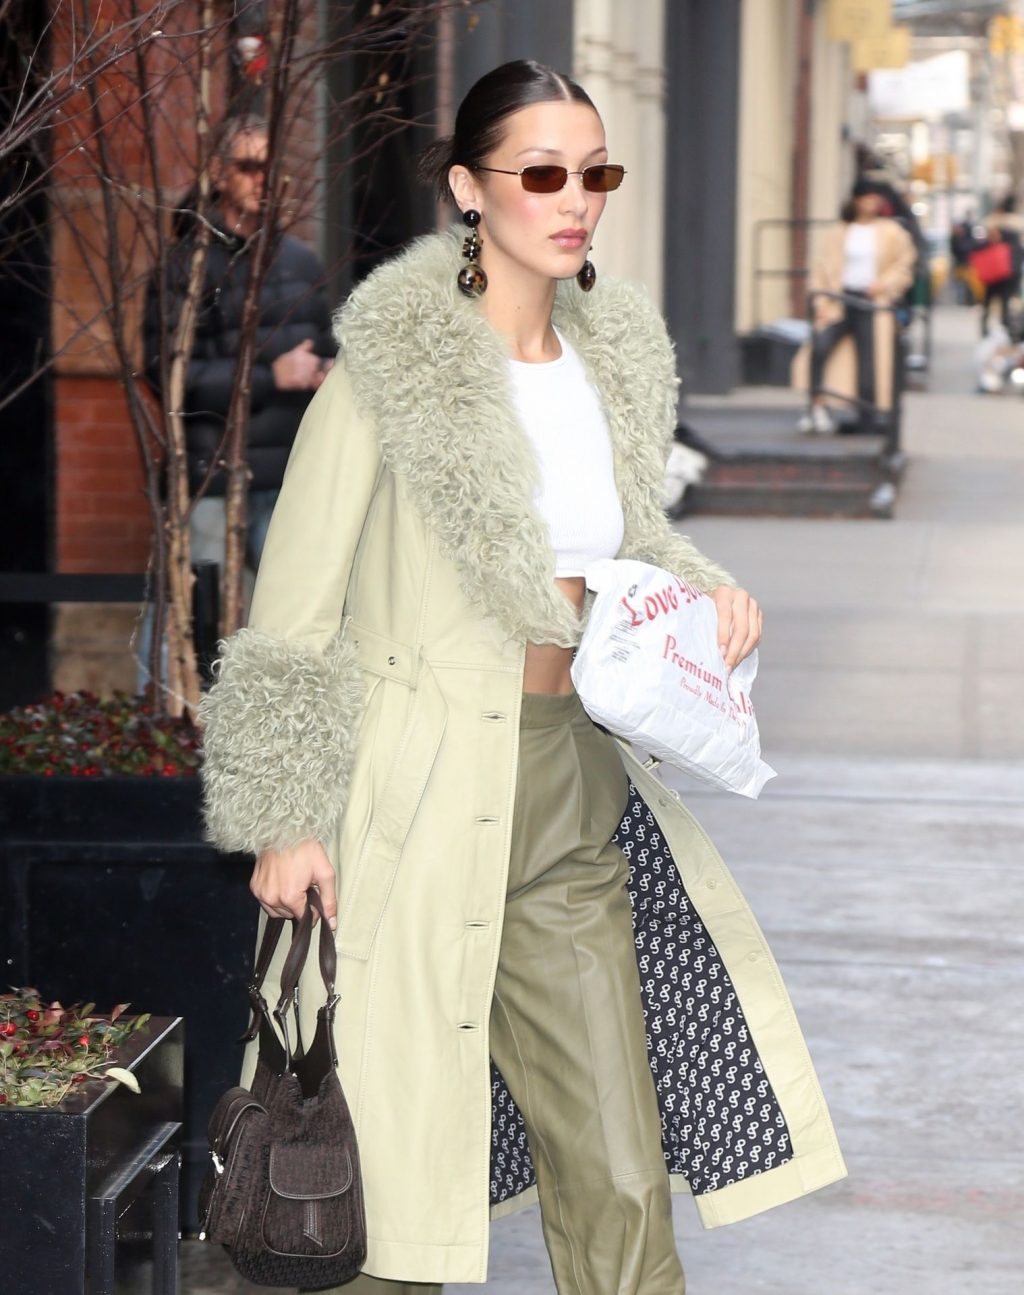 Bella Hadid See through The Fappening Blog 44 1024x1295 - Braless Bella Hadid Arrives at the Park Avenue Armory for the Marc Jacobs Fashion Show (59 Photos)